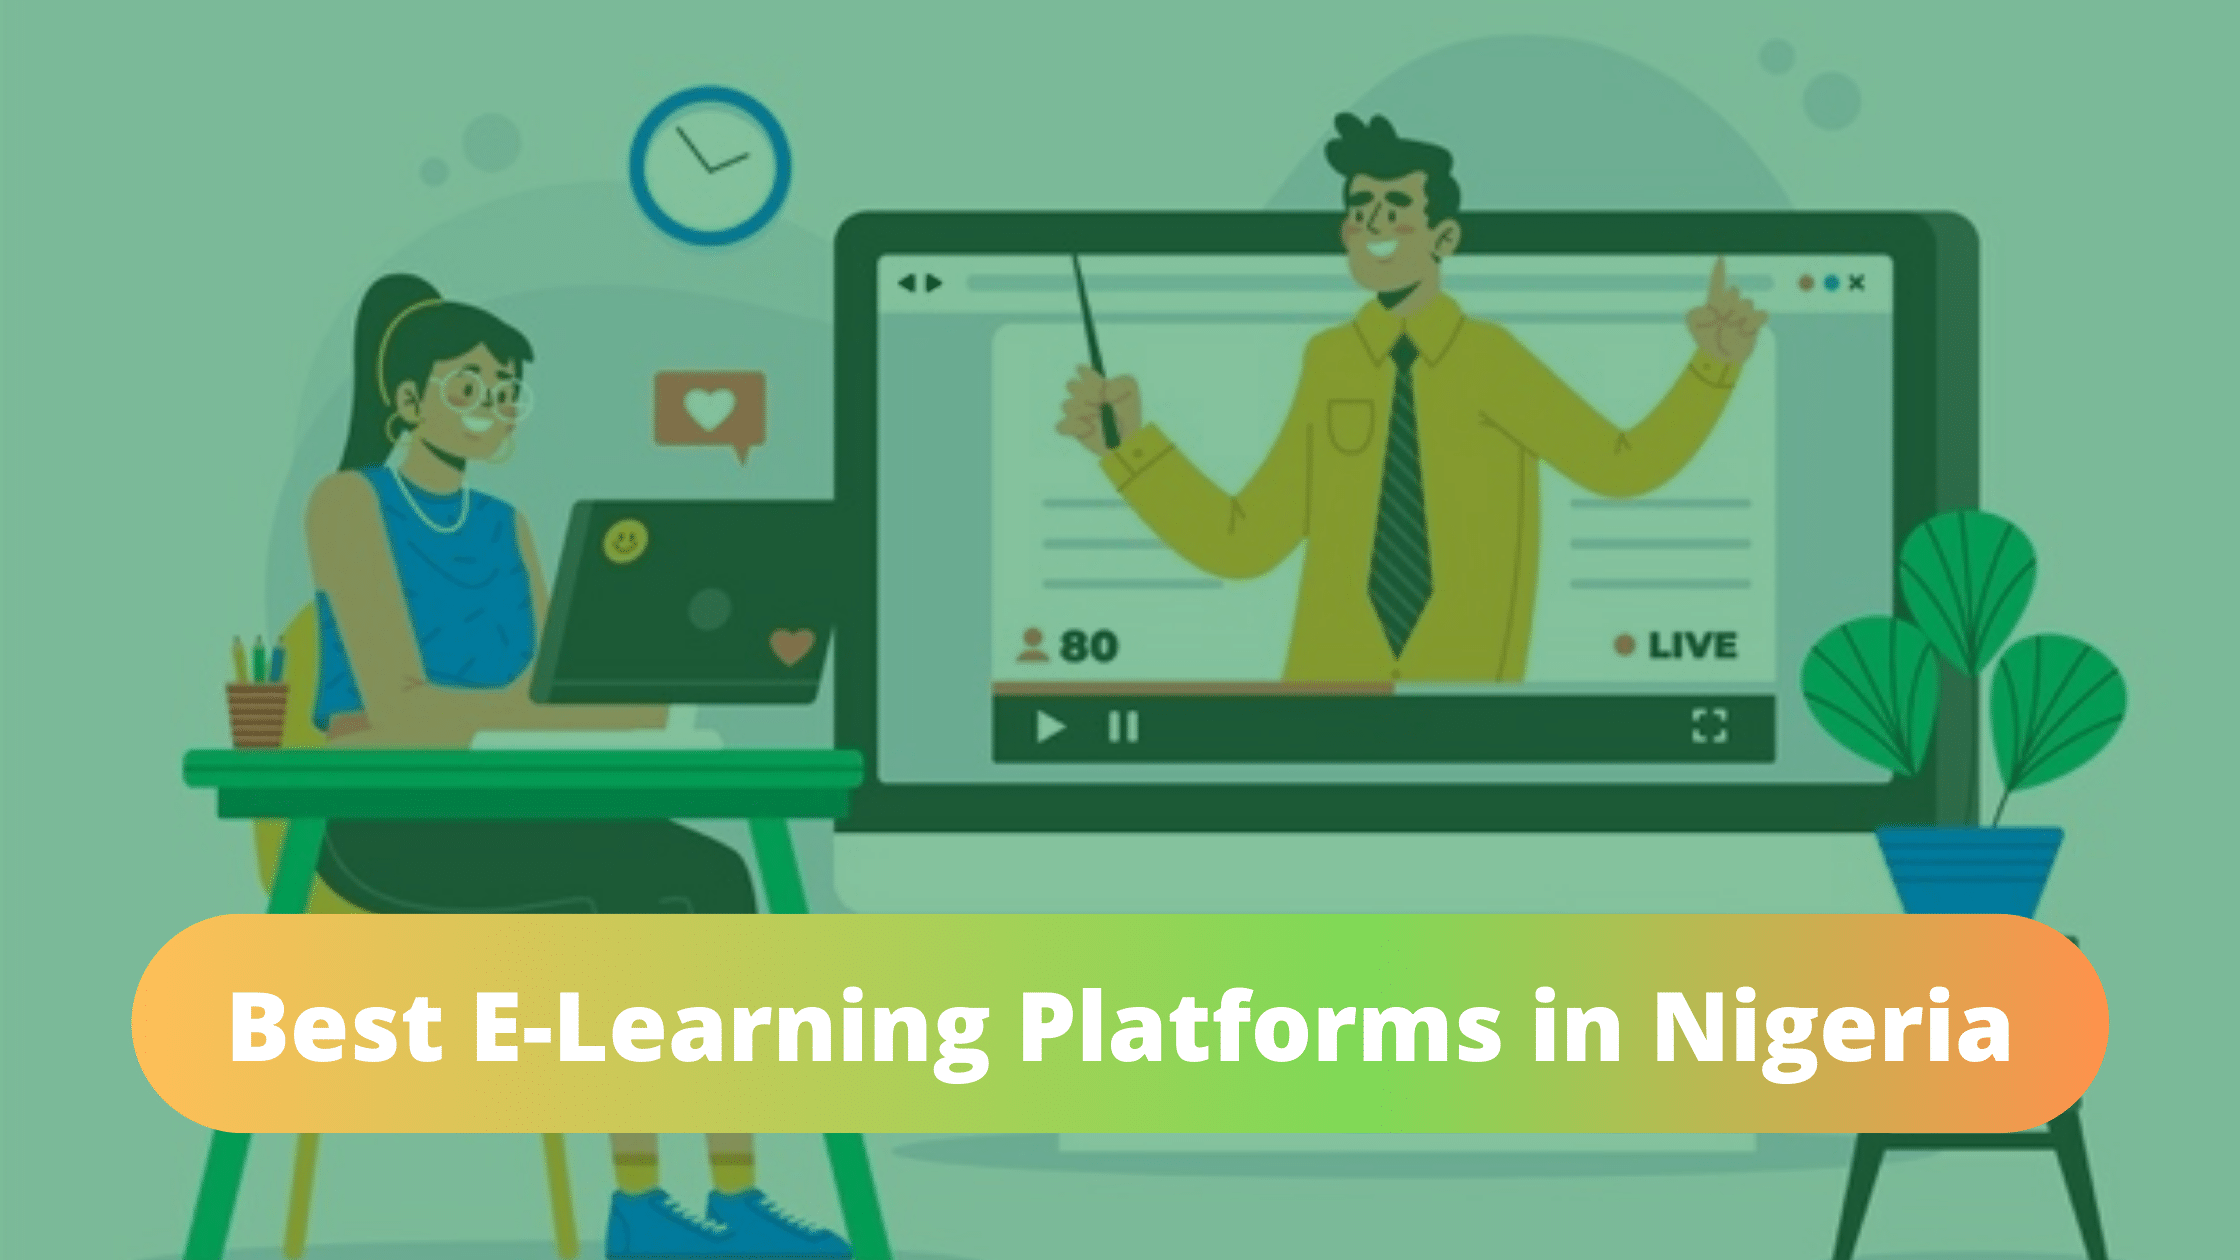 Best E-Learning Platforms in Nigeria